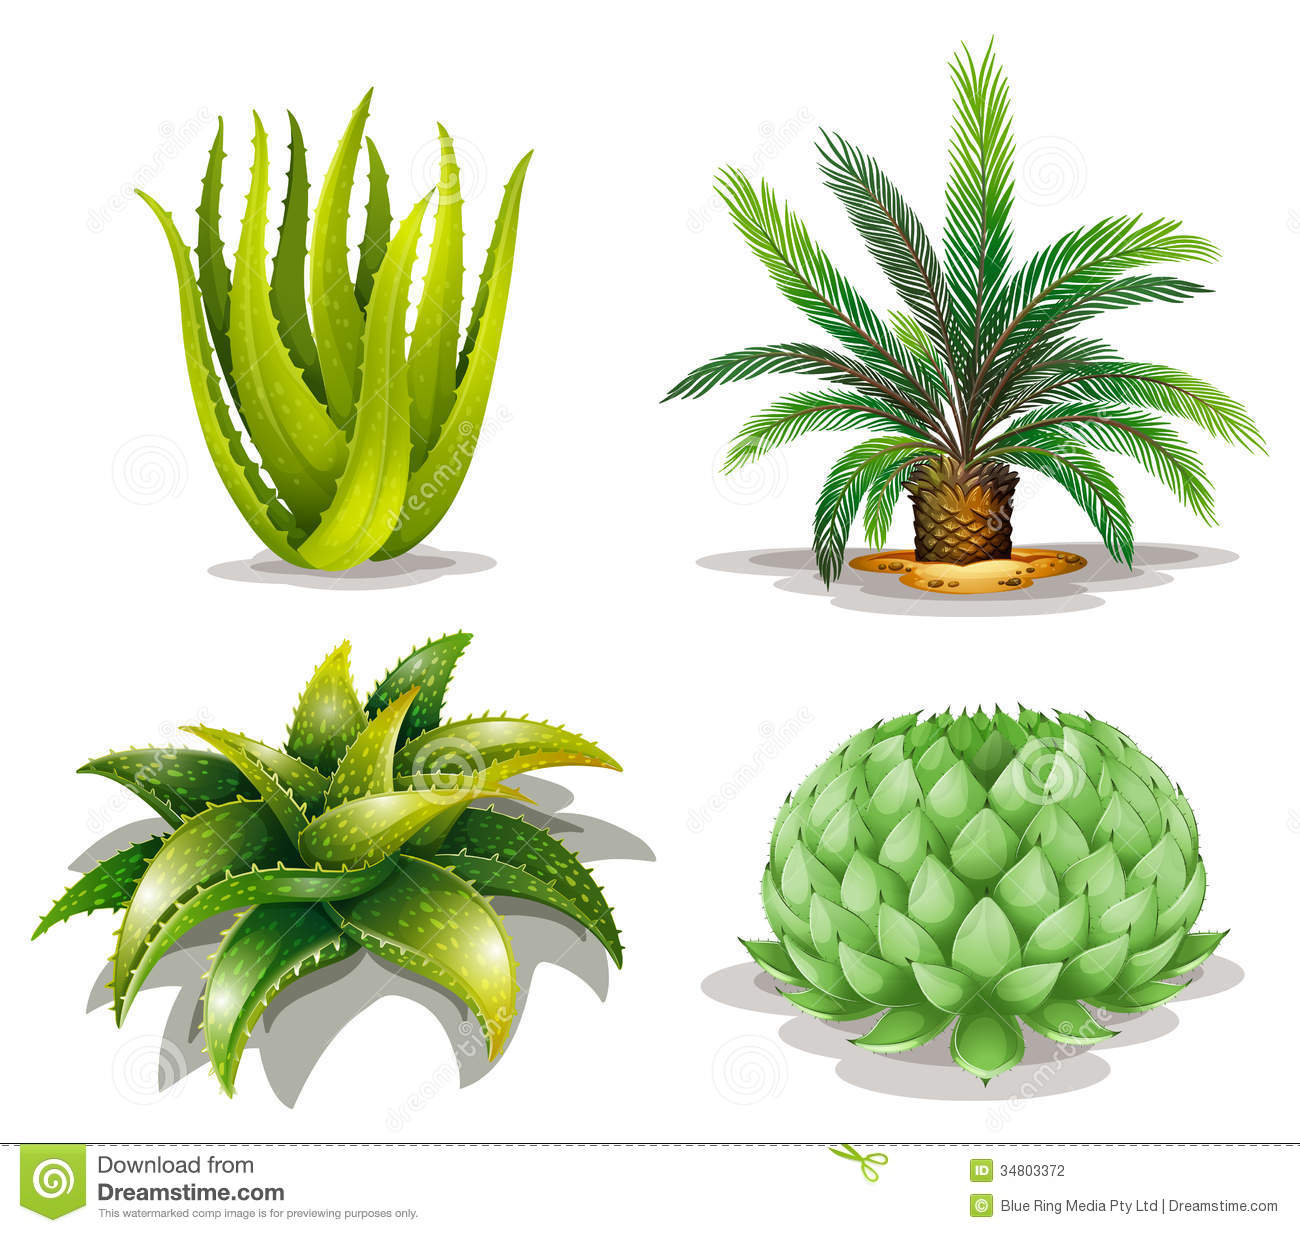 Illustration of the cactus plants on a white background.